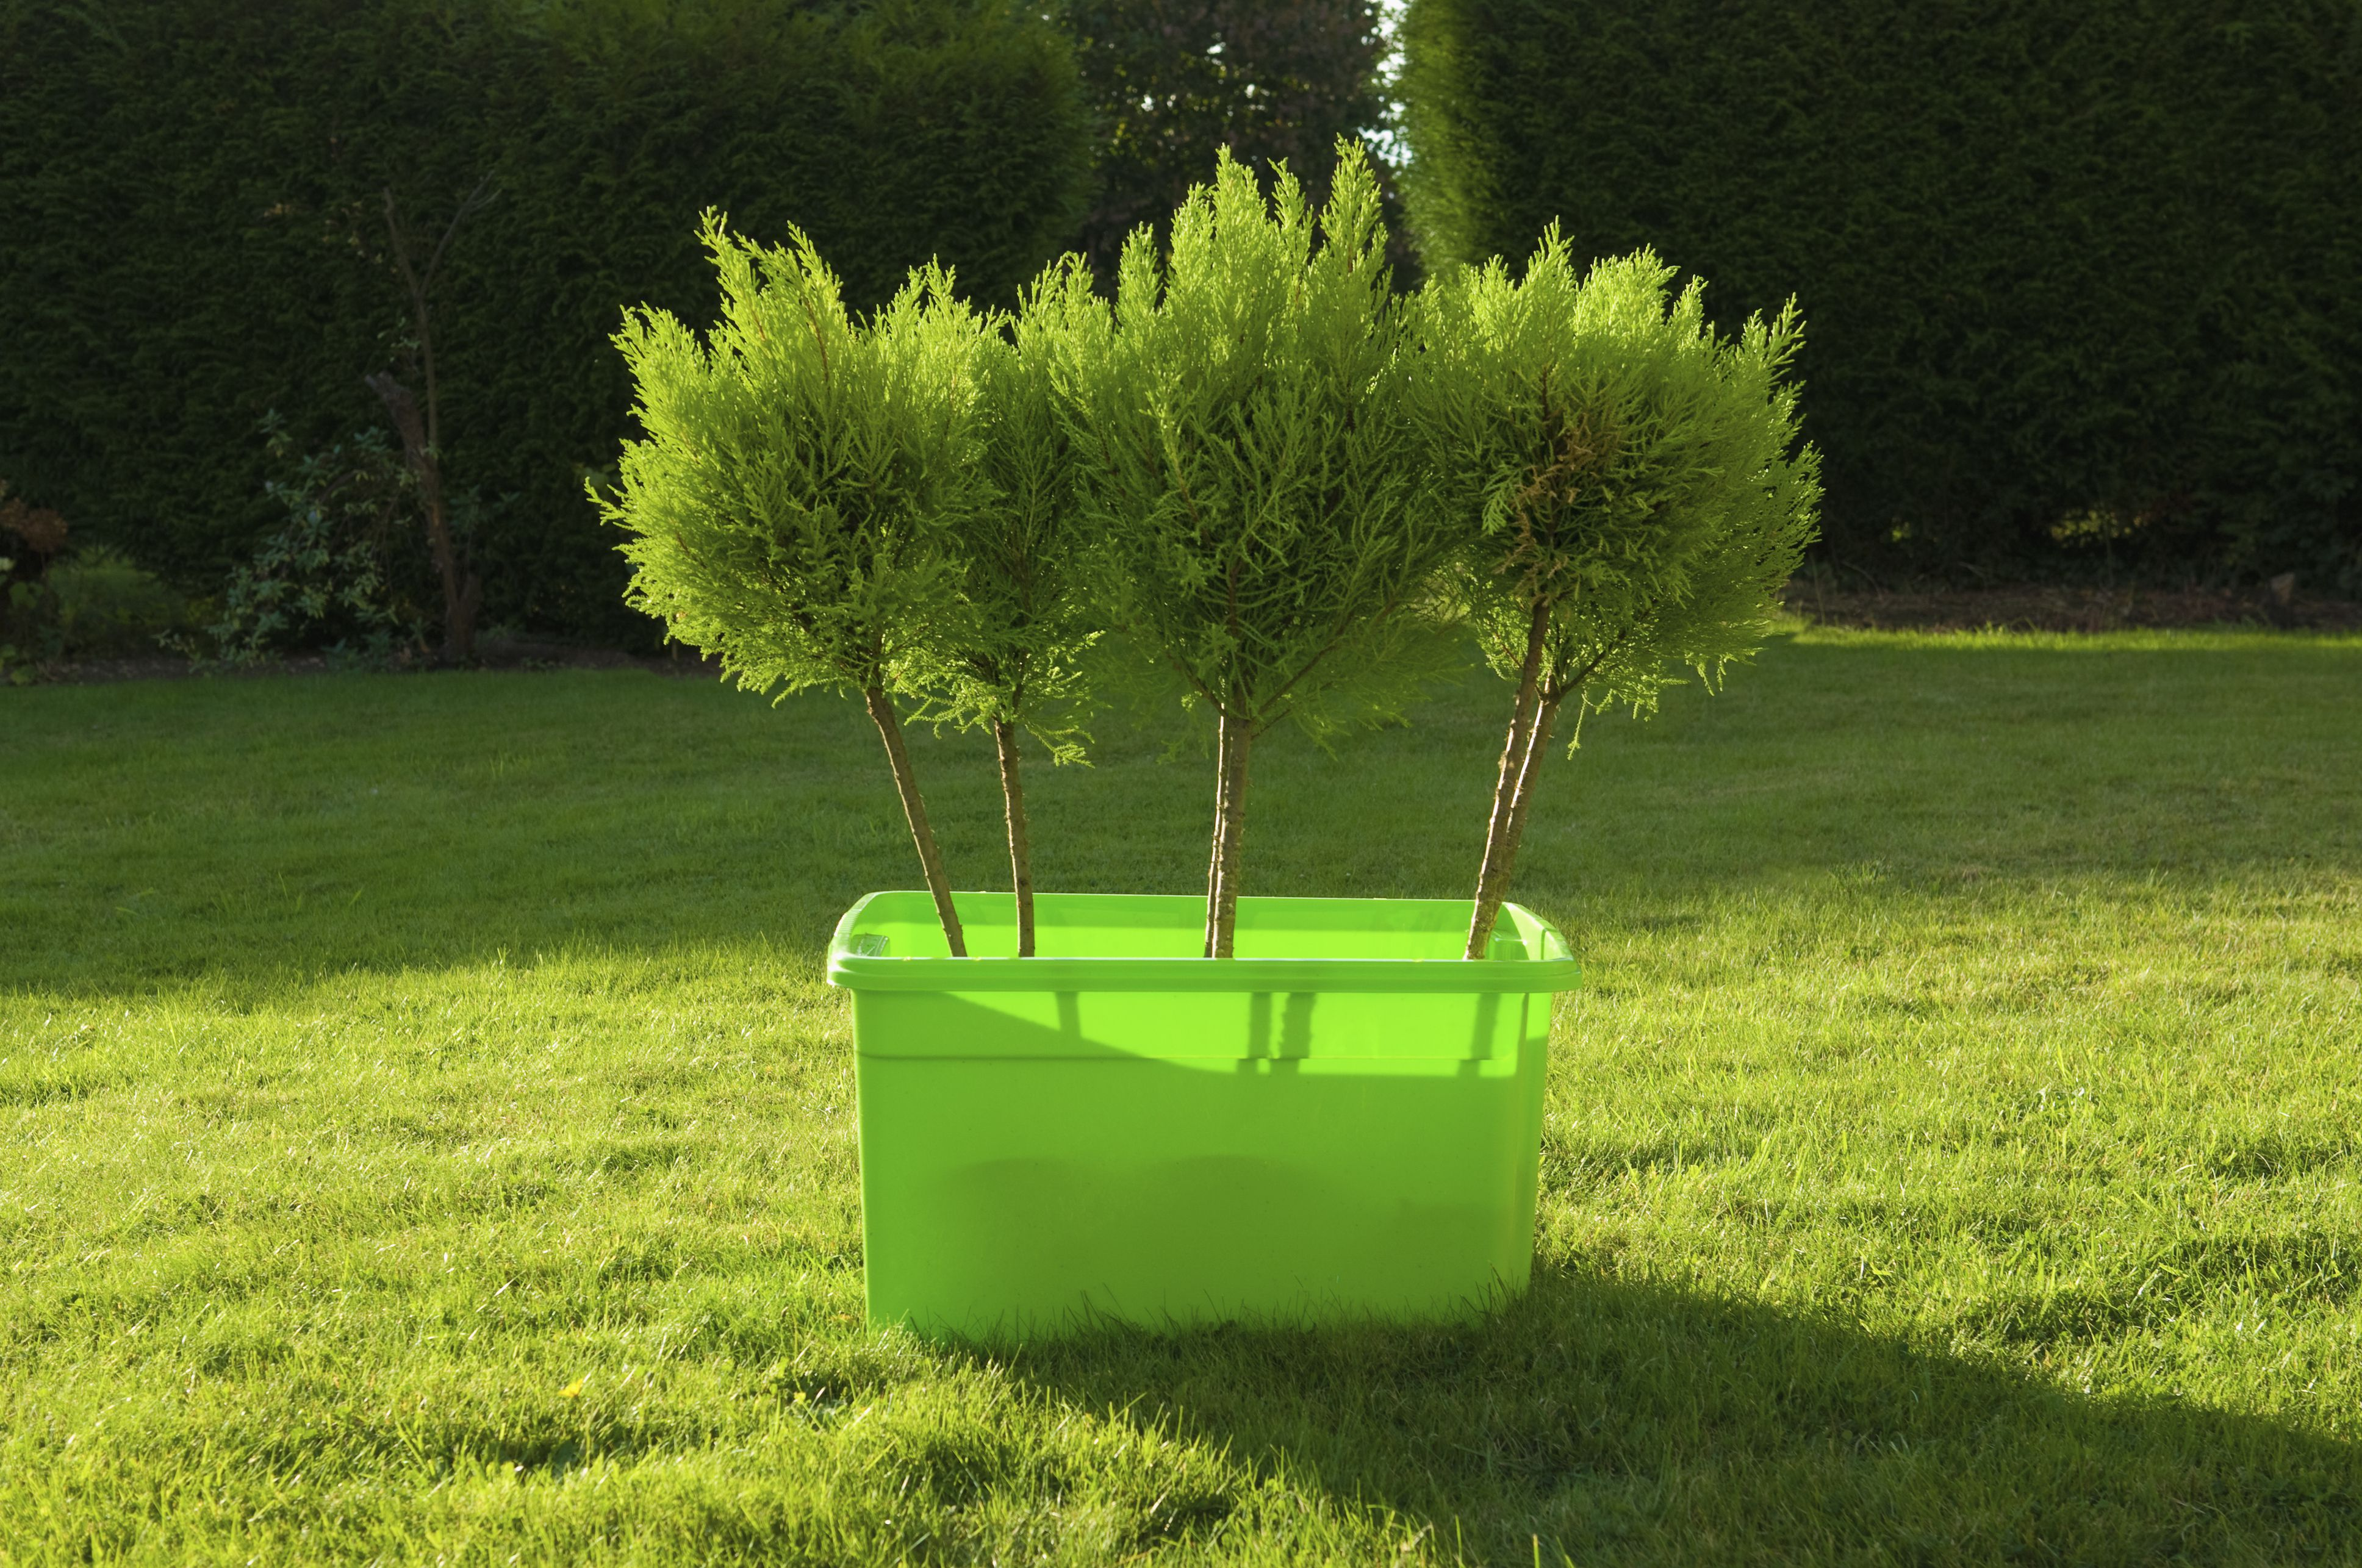 Young trees in a green plastic box standing on a lawn.